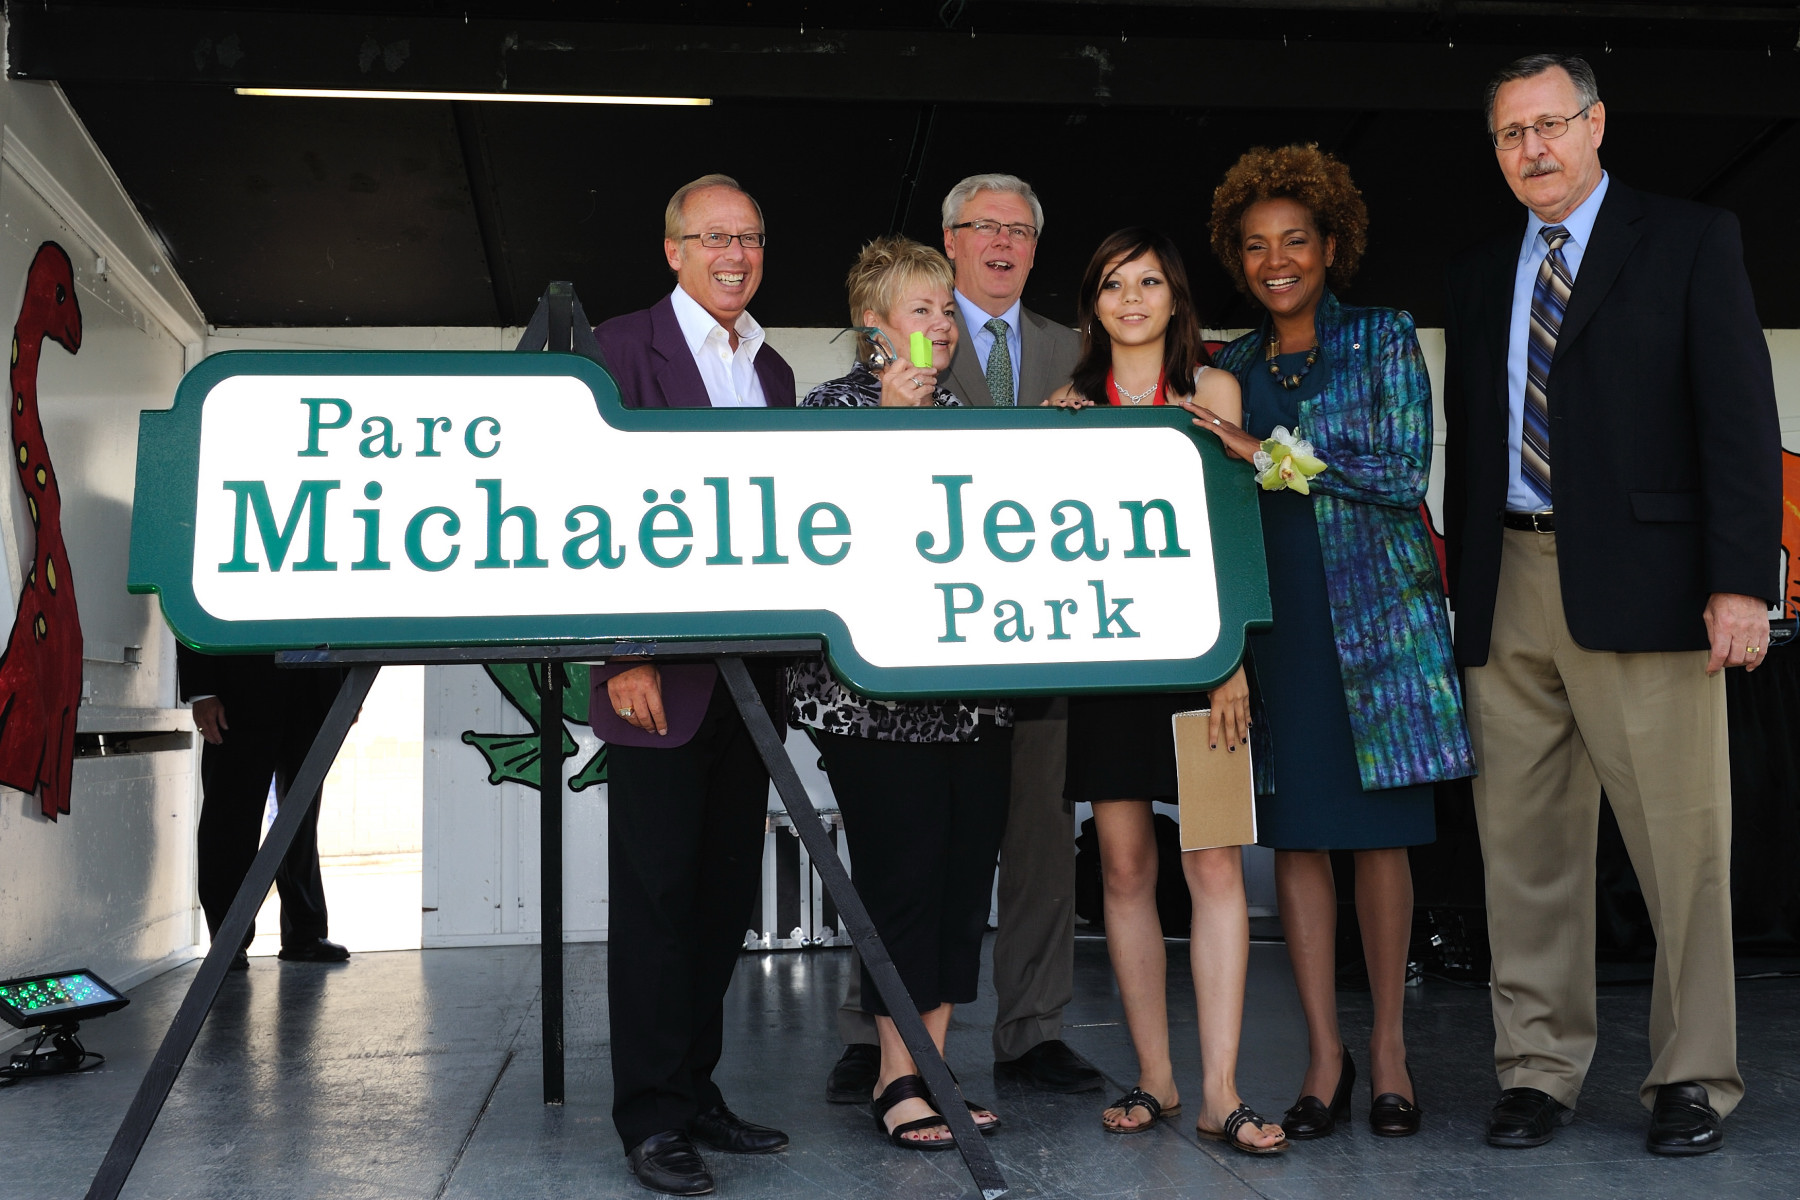 Her Excellency attended the naming of the Michaëlle Jean Park. She delivered a speech and unveiled the park sign.